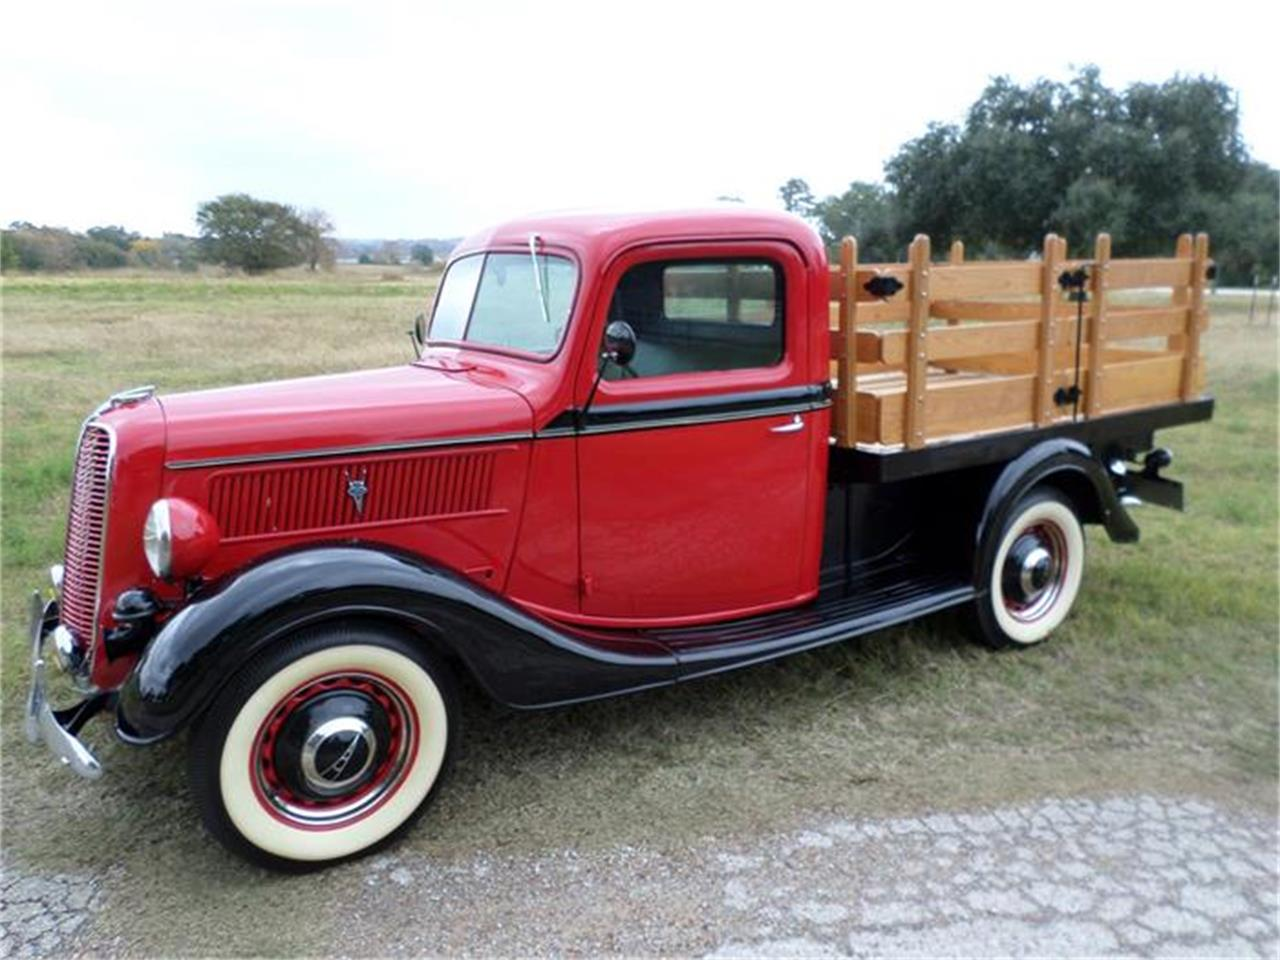 Large Picture of 1937 Ford Pickup - $34,988.00 - D3DQ